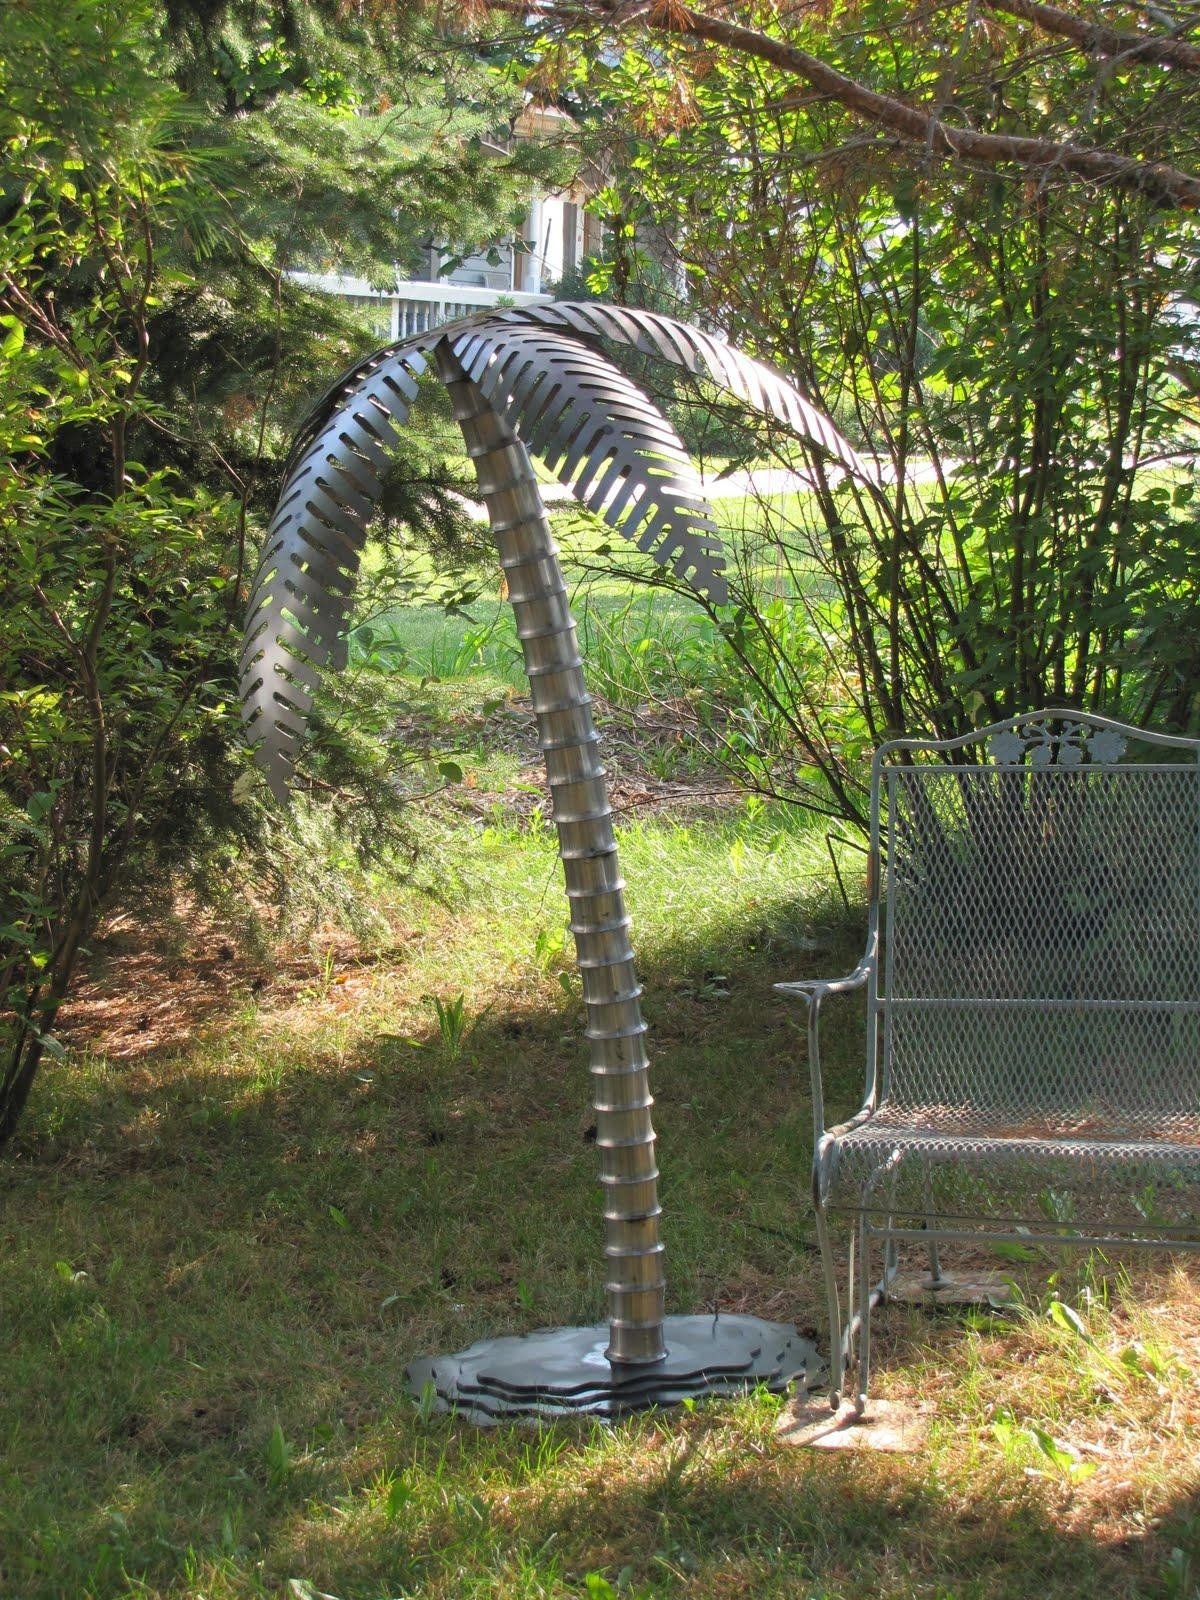 5 Ft Tall Steel Palm Tree | Metal Innovations pertaining to Palm Tree Metal Art